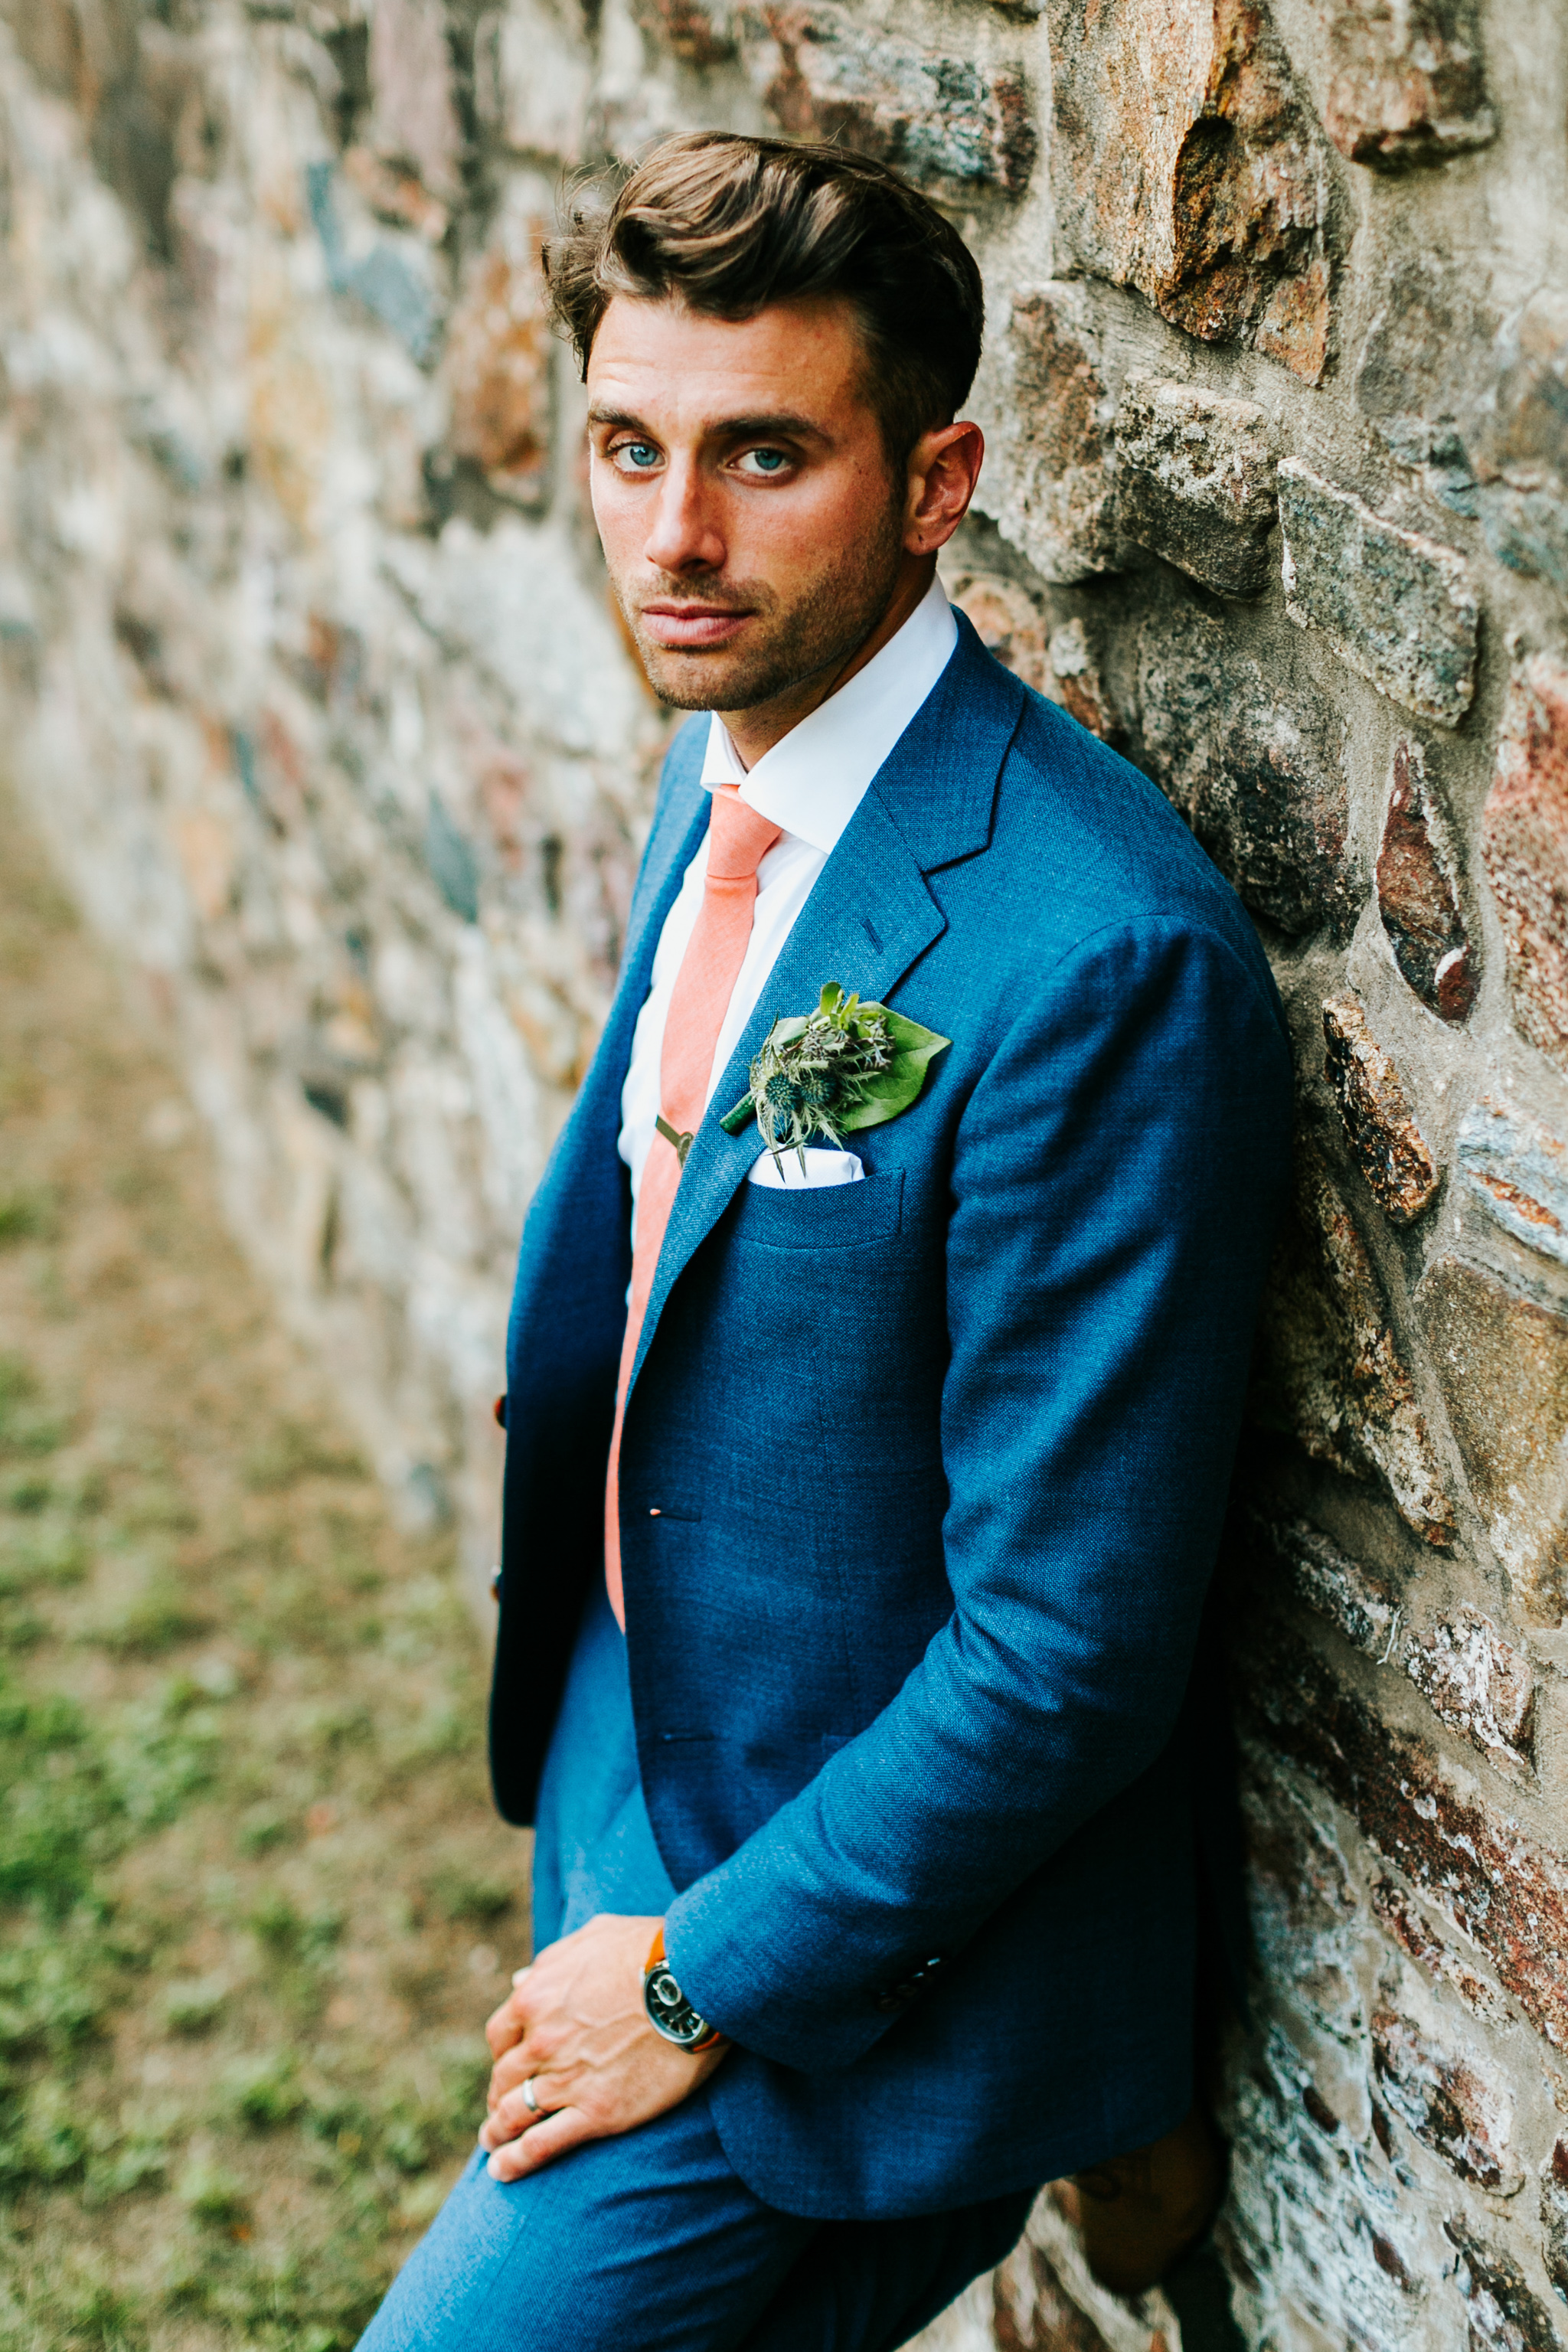 Historic Yellow Springs Wedding with DIY Details and Boho Vibe with Wedding Coordination by Heart & Dash Images by Danfredo with groom wearing navy suit